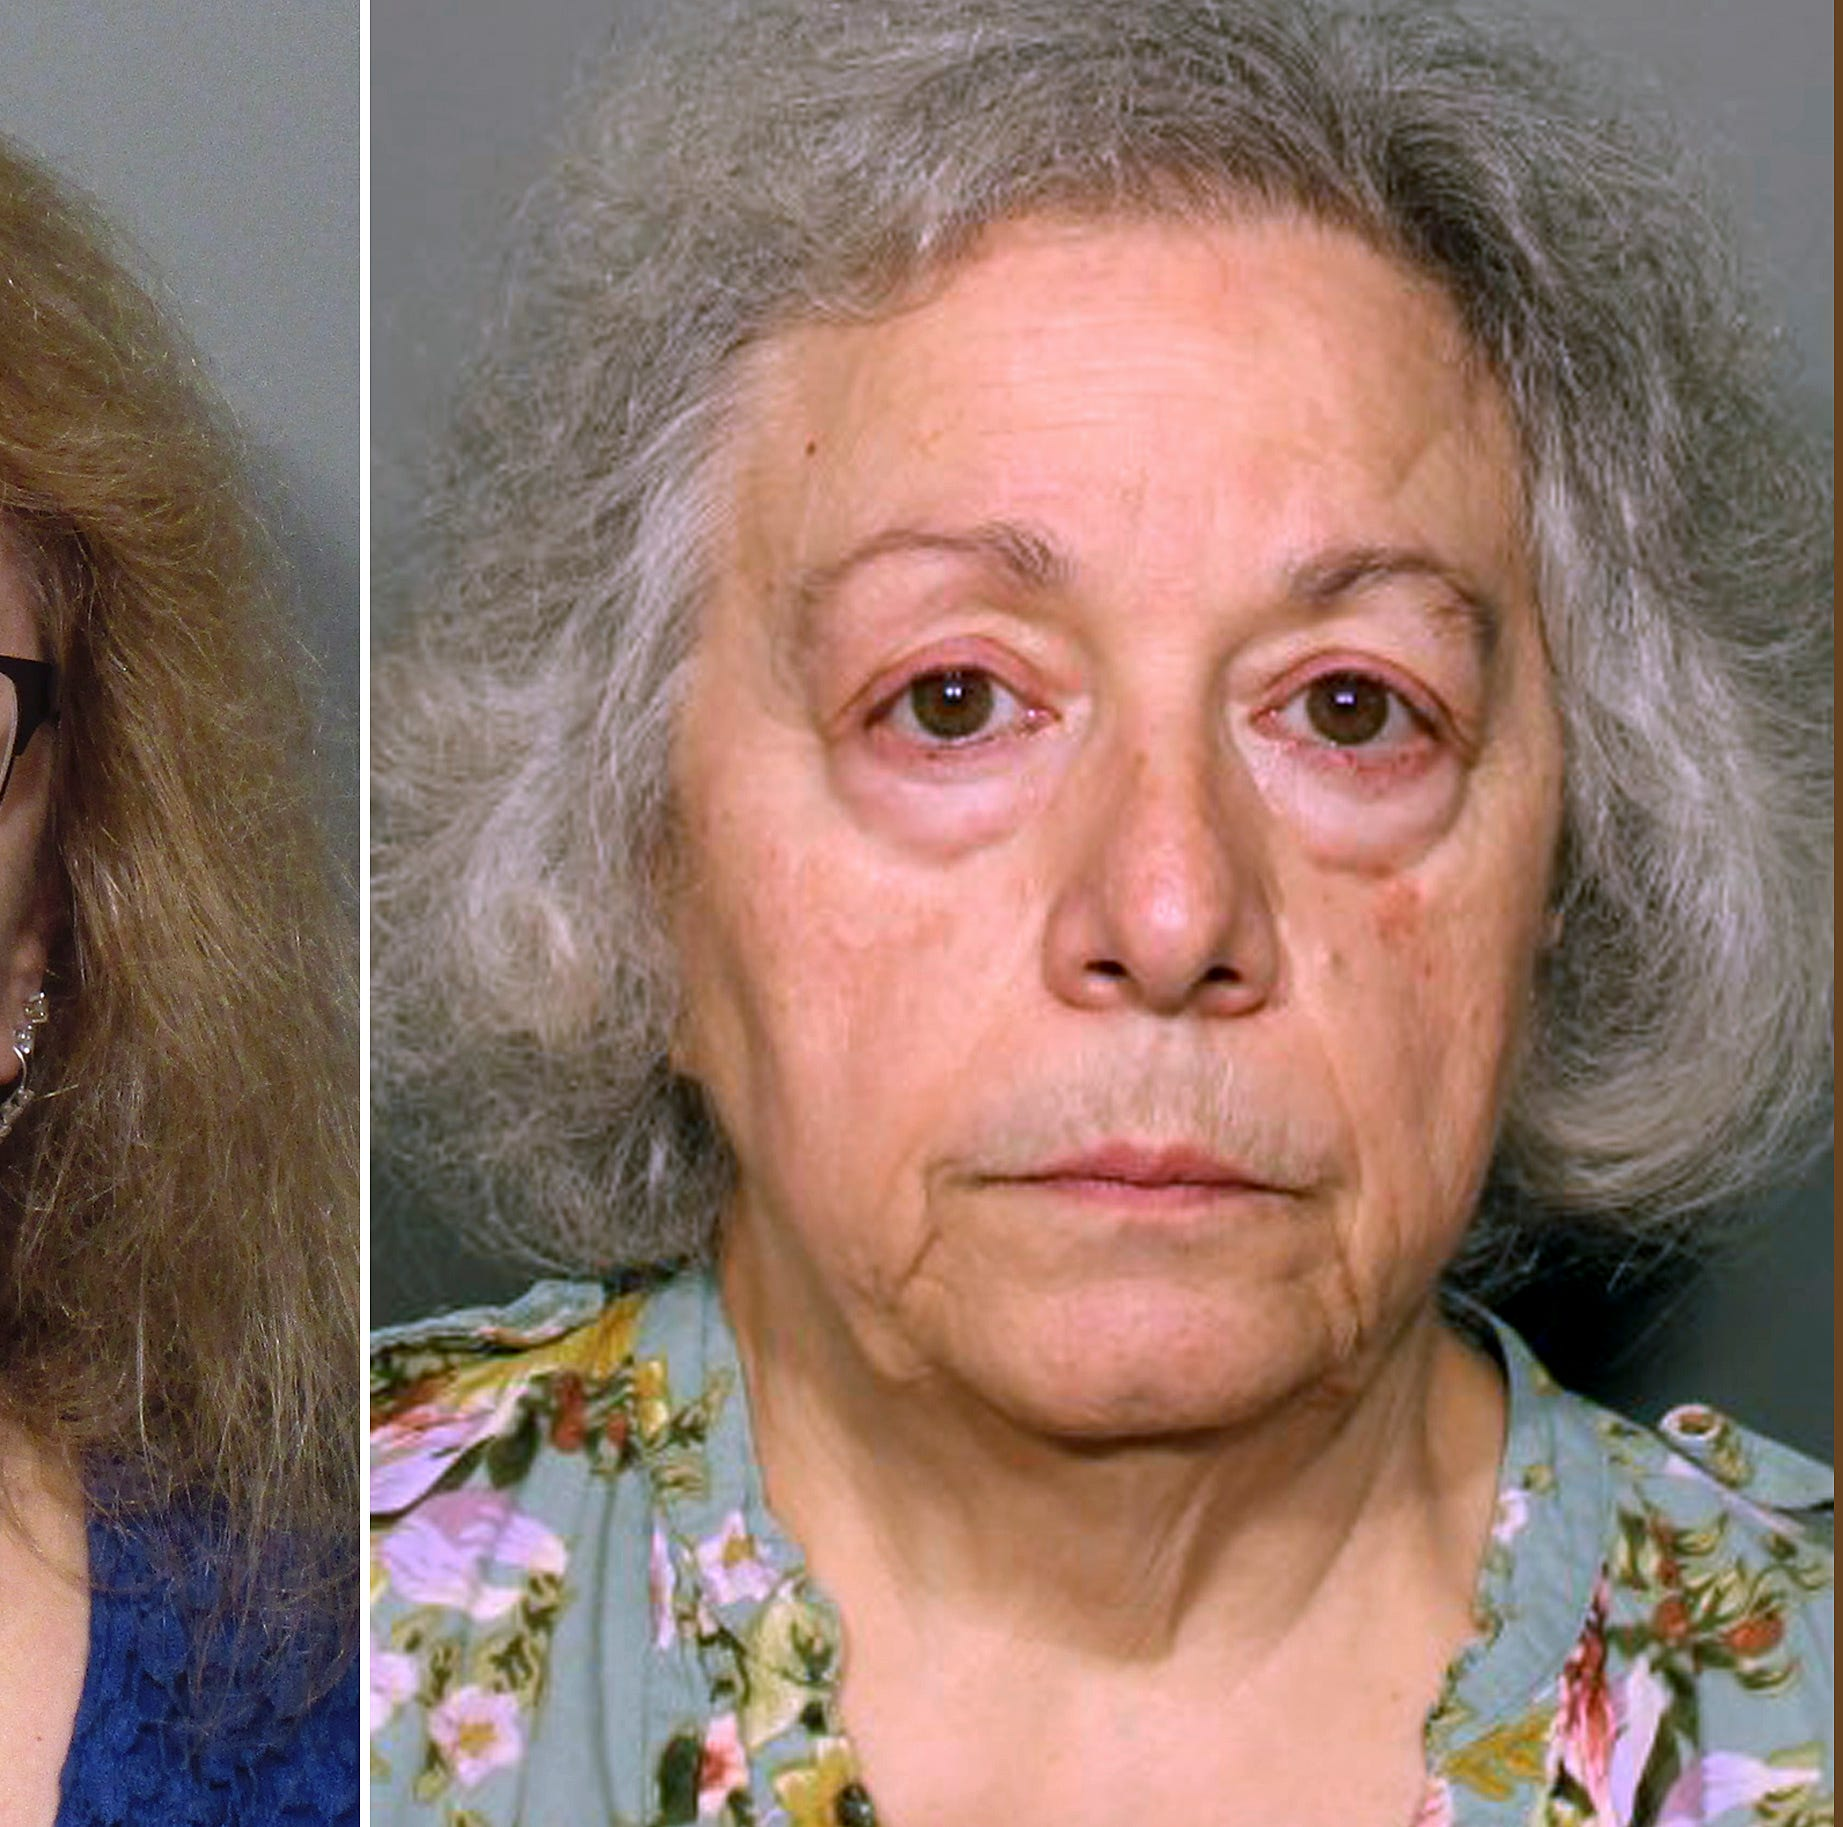 "This pair of photos released Monday, Aug. 13, 2018, by the New Canaan Police Department show Joanne Pascarelli, left, of Stratford, Conn., and her sister Marie Wilson, right, of Wilton, Conn., former cafeteria workers charged with stealing nearly a half-million dollars from New Canaan, Conn., schools over the last five years. An attorney for Wilson says she is innocent and is ""not going to be scapegoated."" (New Canaan Police Department via AP) ORG XMIT: BX101"